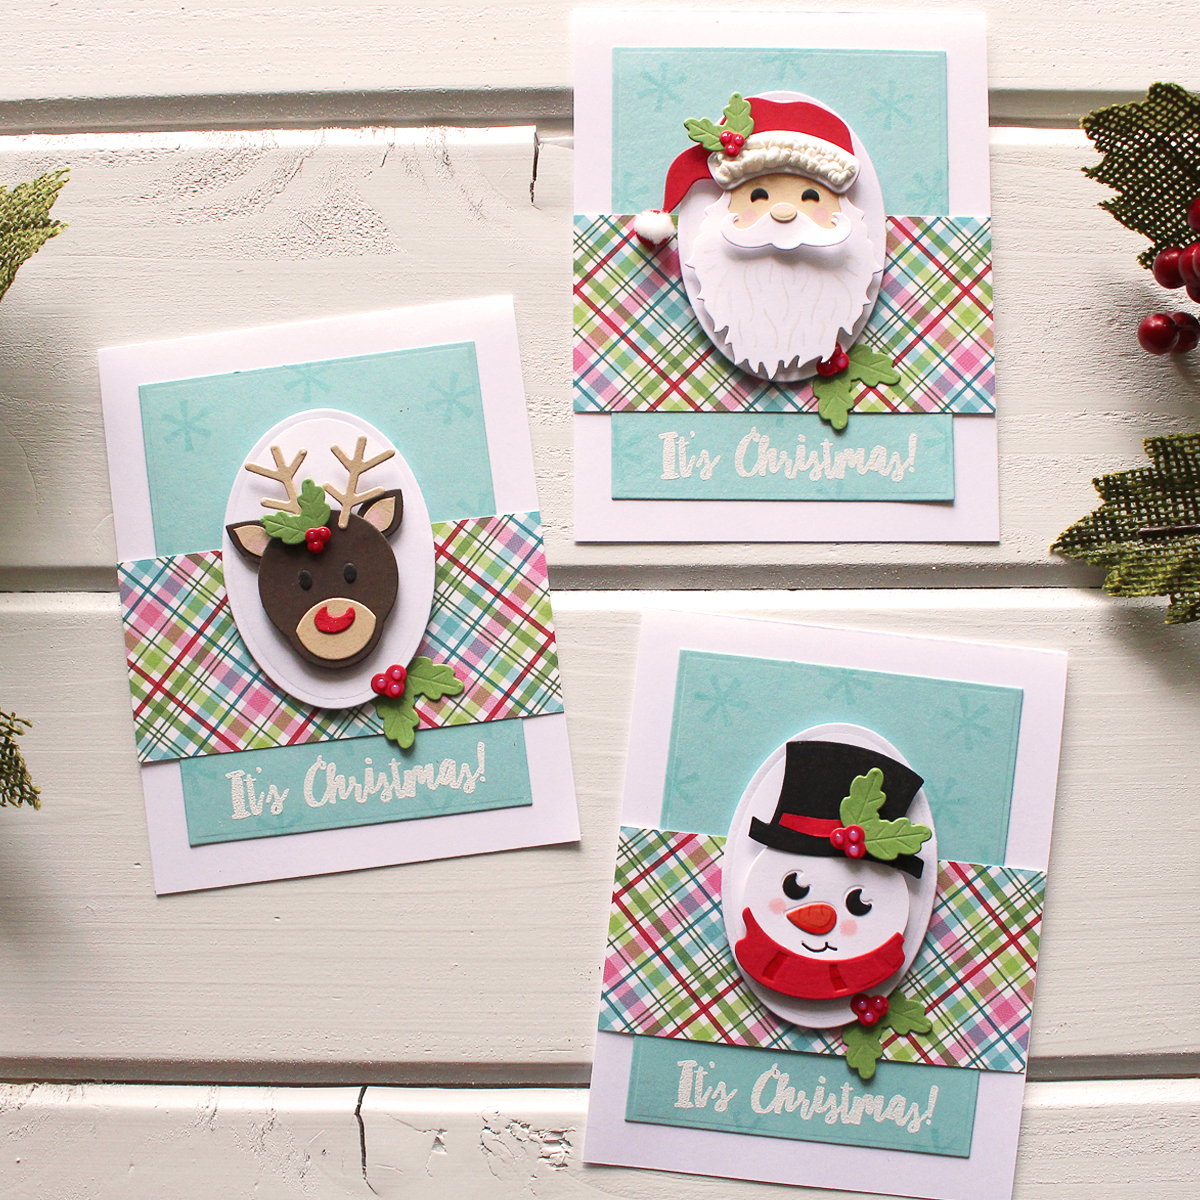 Spellbinders Santa Die D-Lites Set Christmas Cutting Dies Holiday Card Making